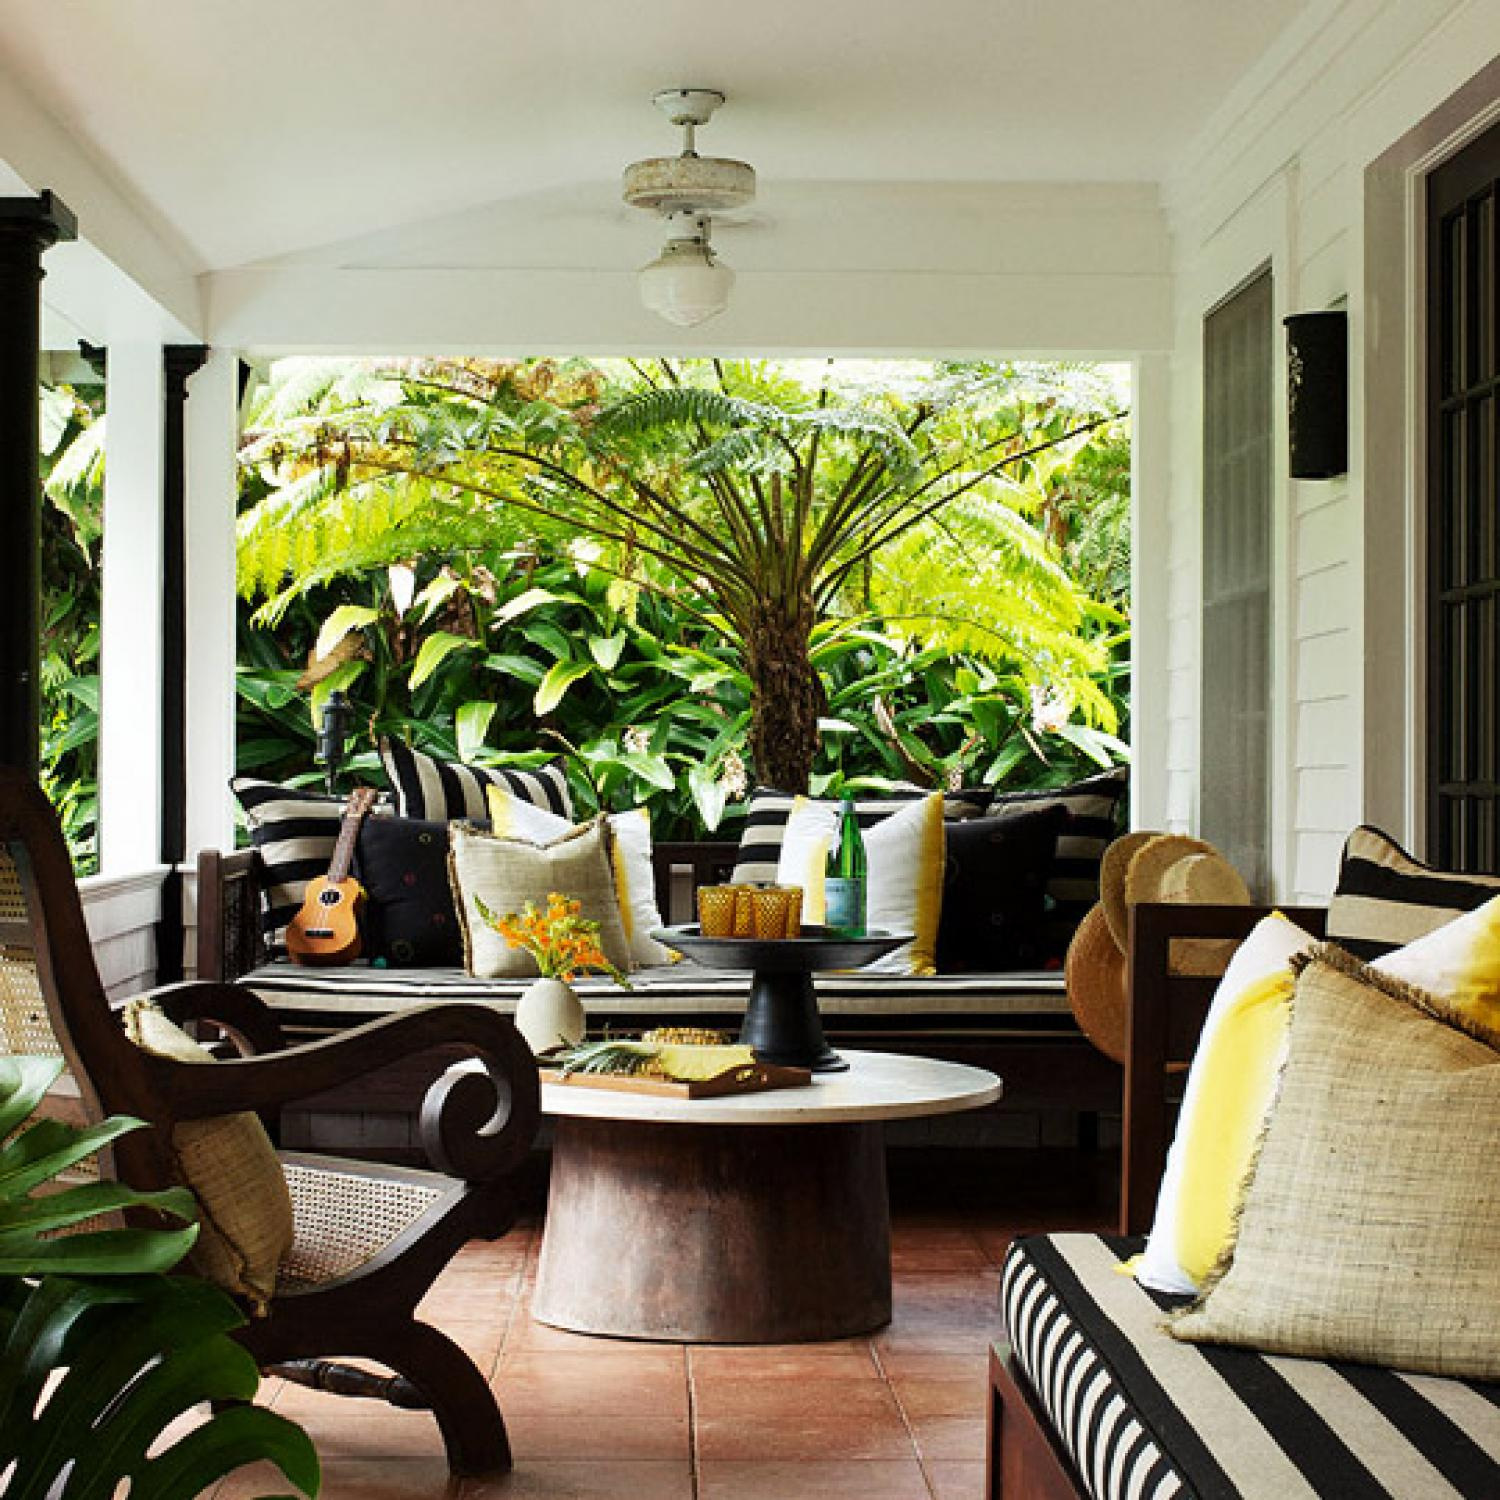 Home Interior Design: Tropical Traditional Home